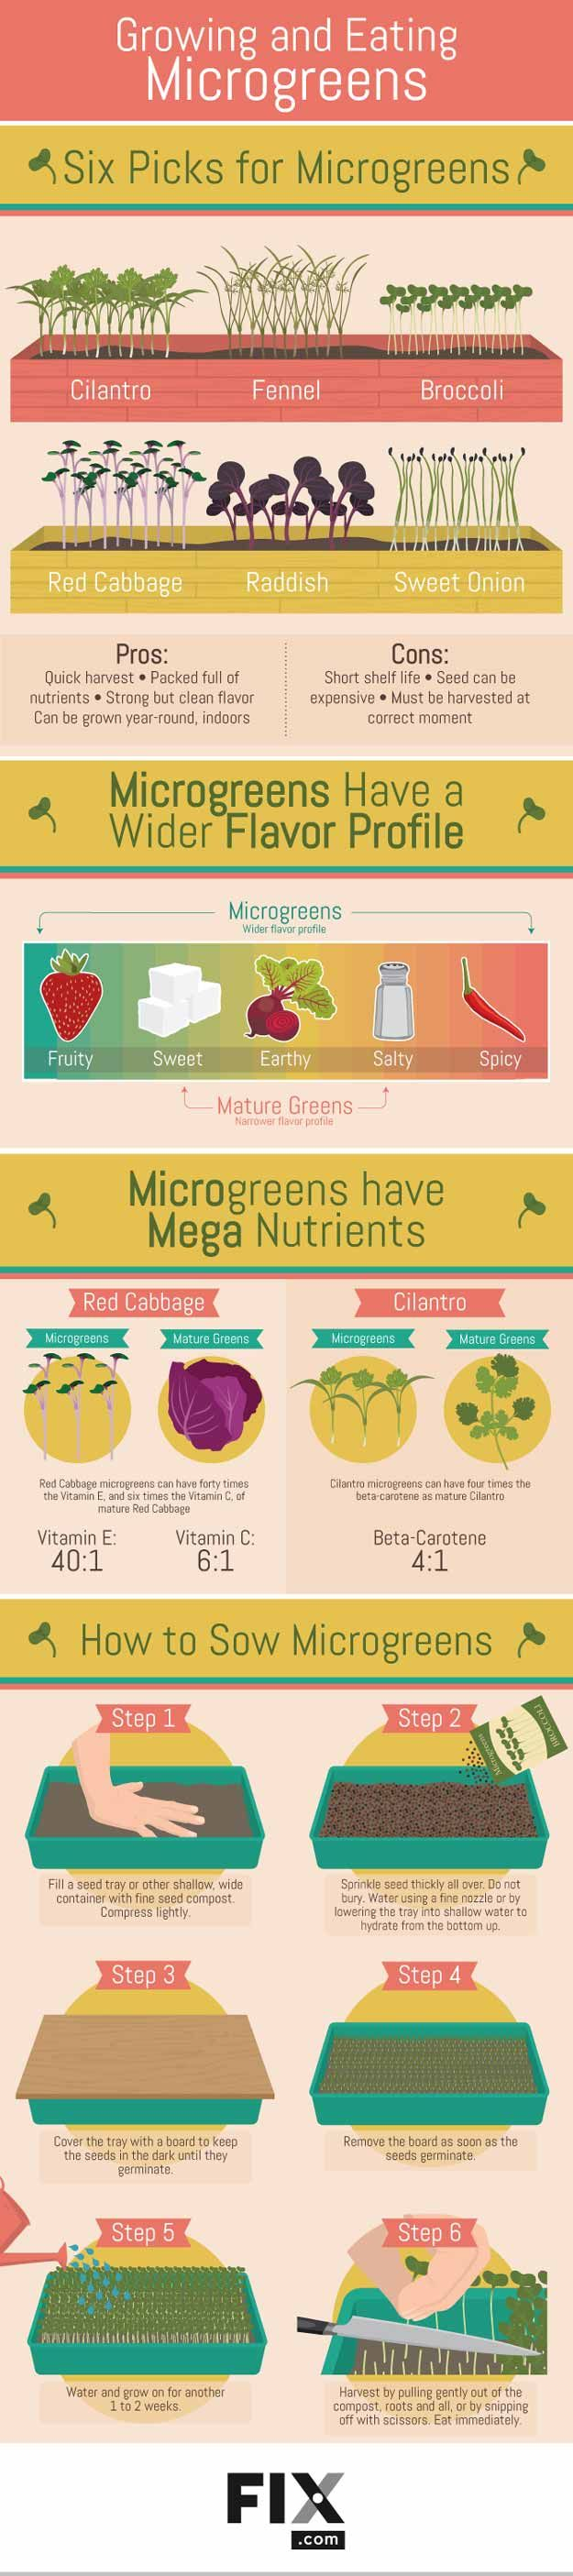 Microgreens Growing Guide For Homesteading How To Plant And Harvest Microgreens - Gardening Tips And Ideas For Beginners And Expert Gardeners by Pioneer Settler at http://pioneersettler.com/need-know-microgreens/